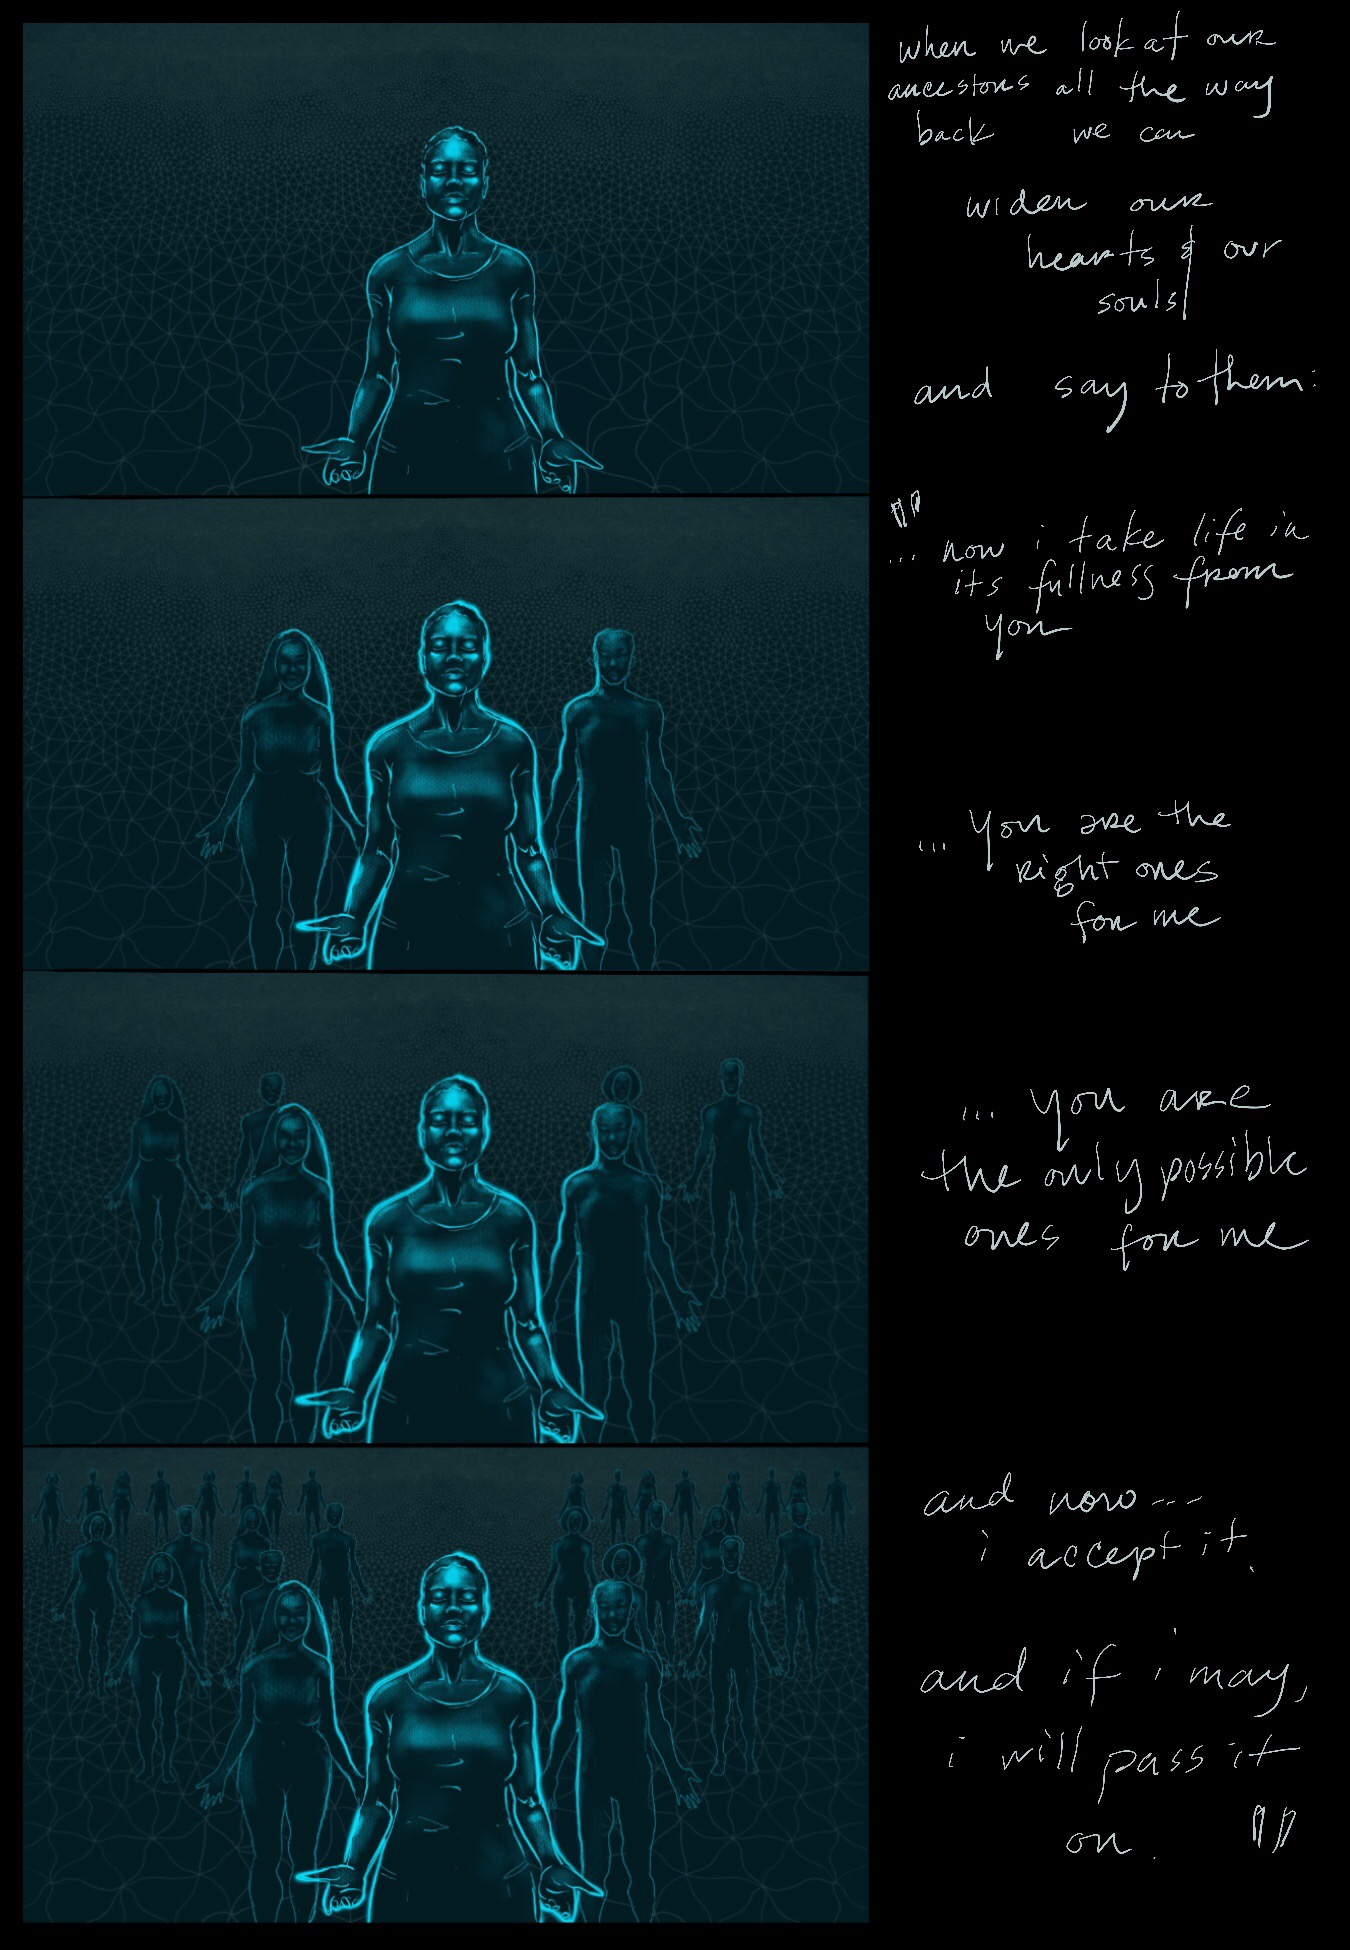 Storyboard Concept, Soul Movement Healing Collaboration 2018